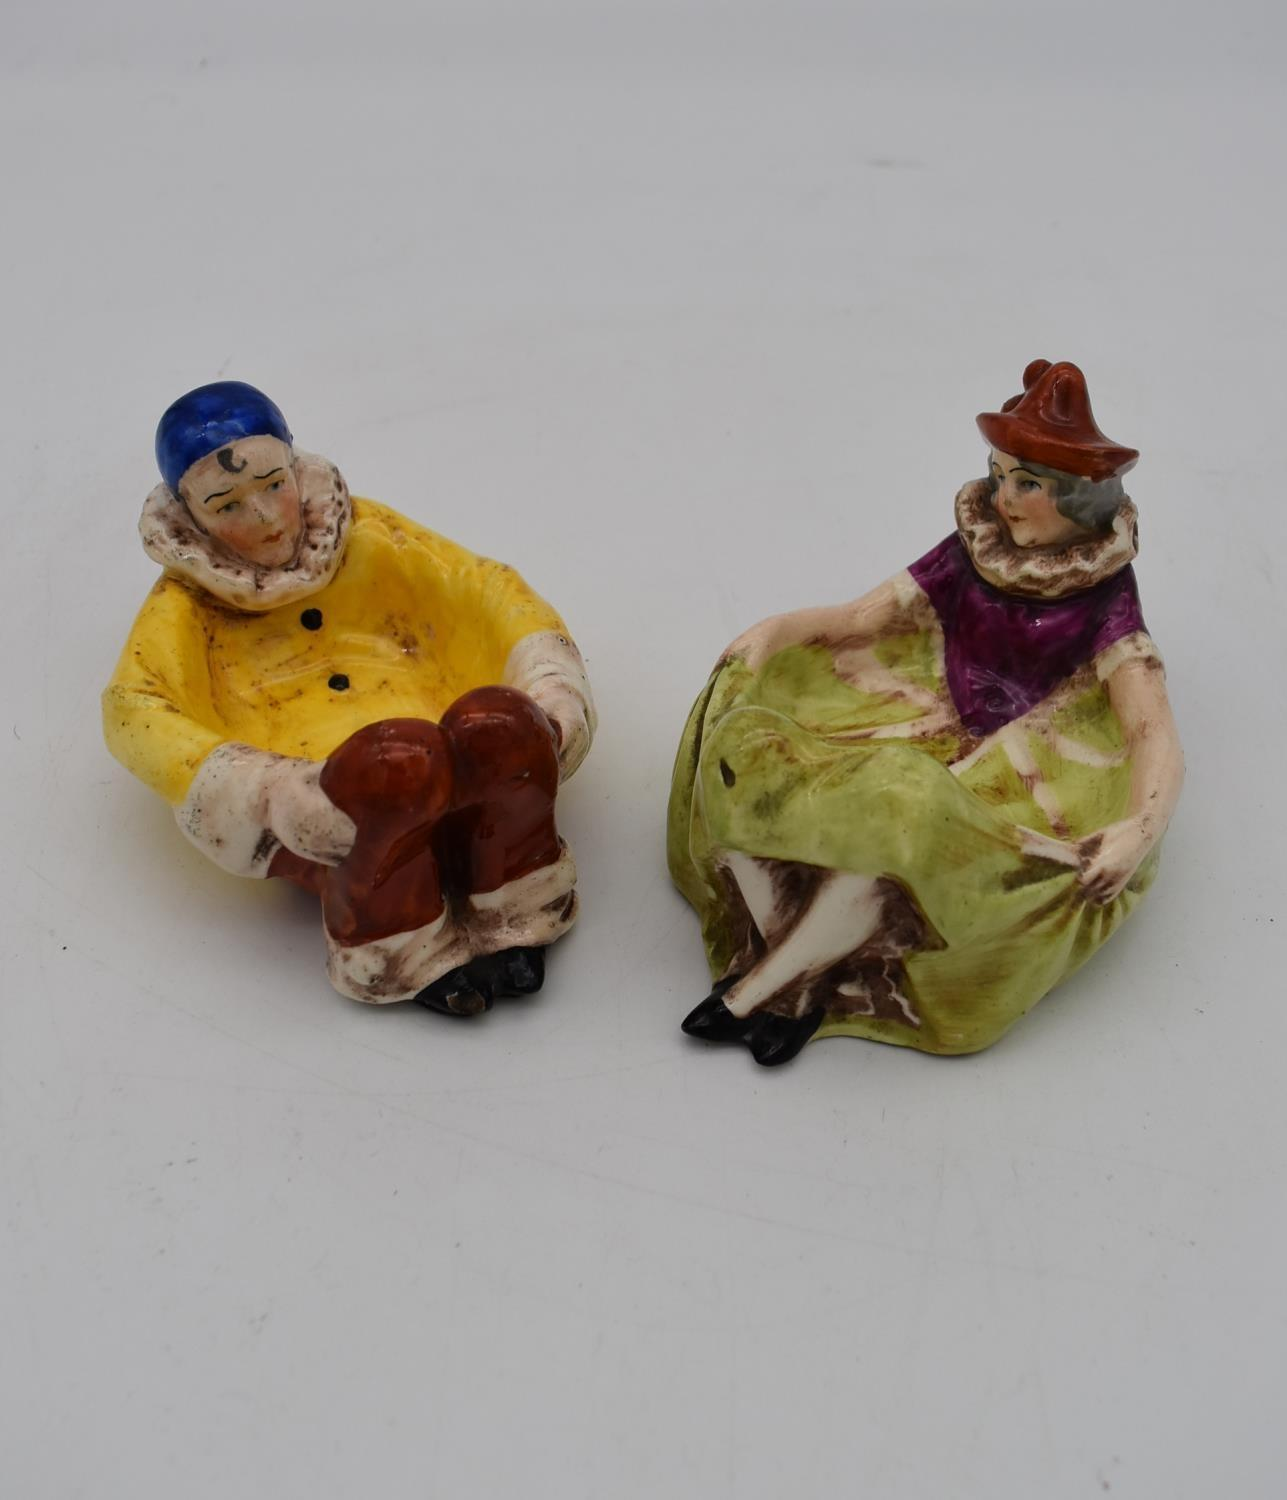 Two antique hand painted porcelain lying figures, one male clown and a female clown, used as dishes.